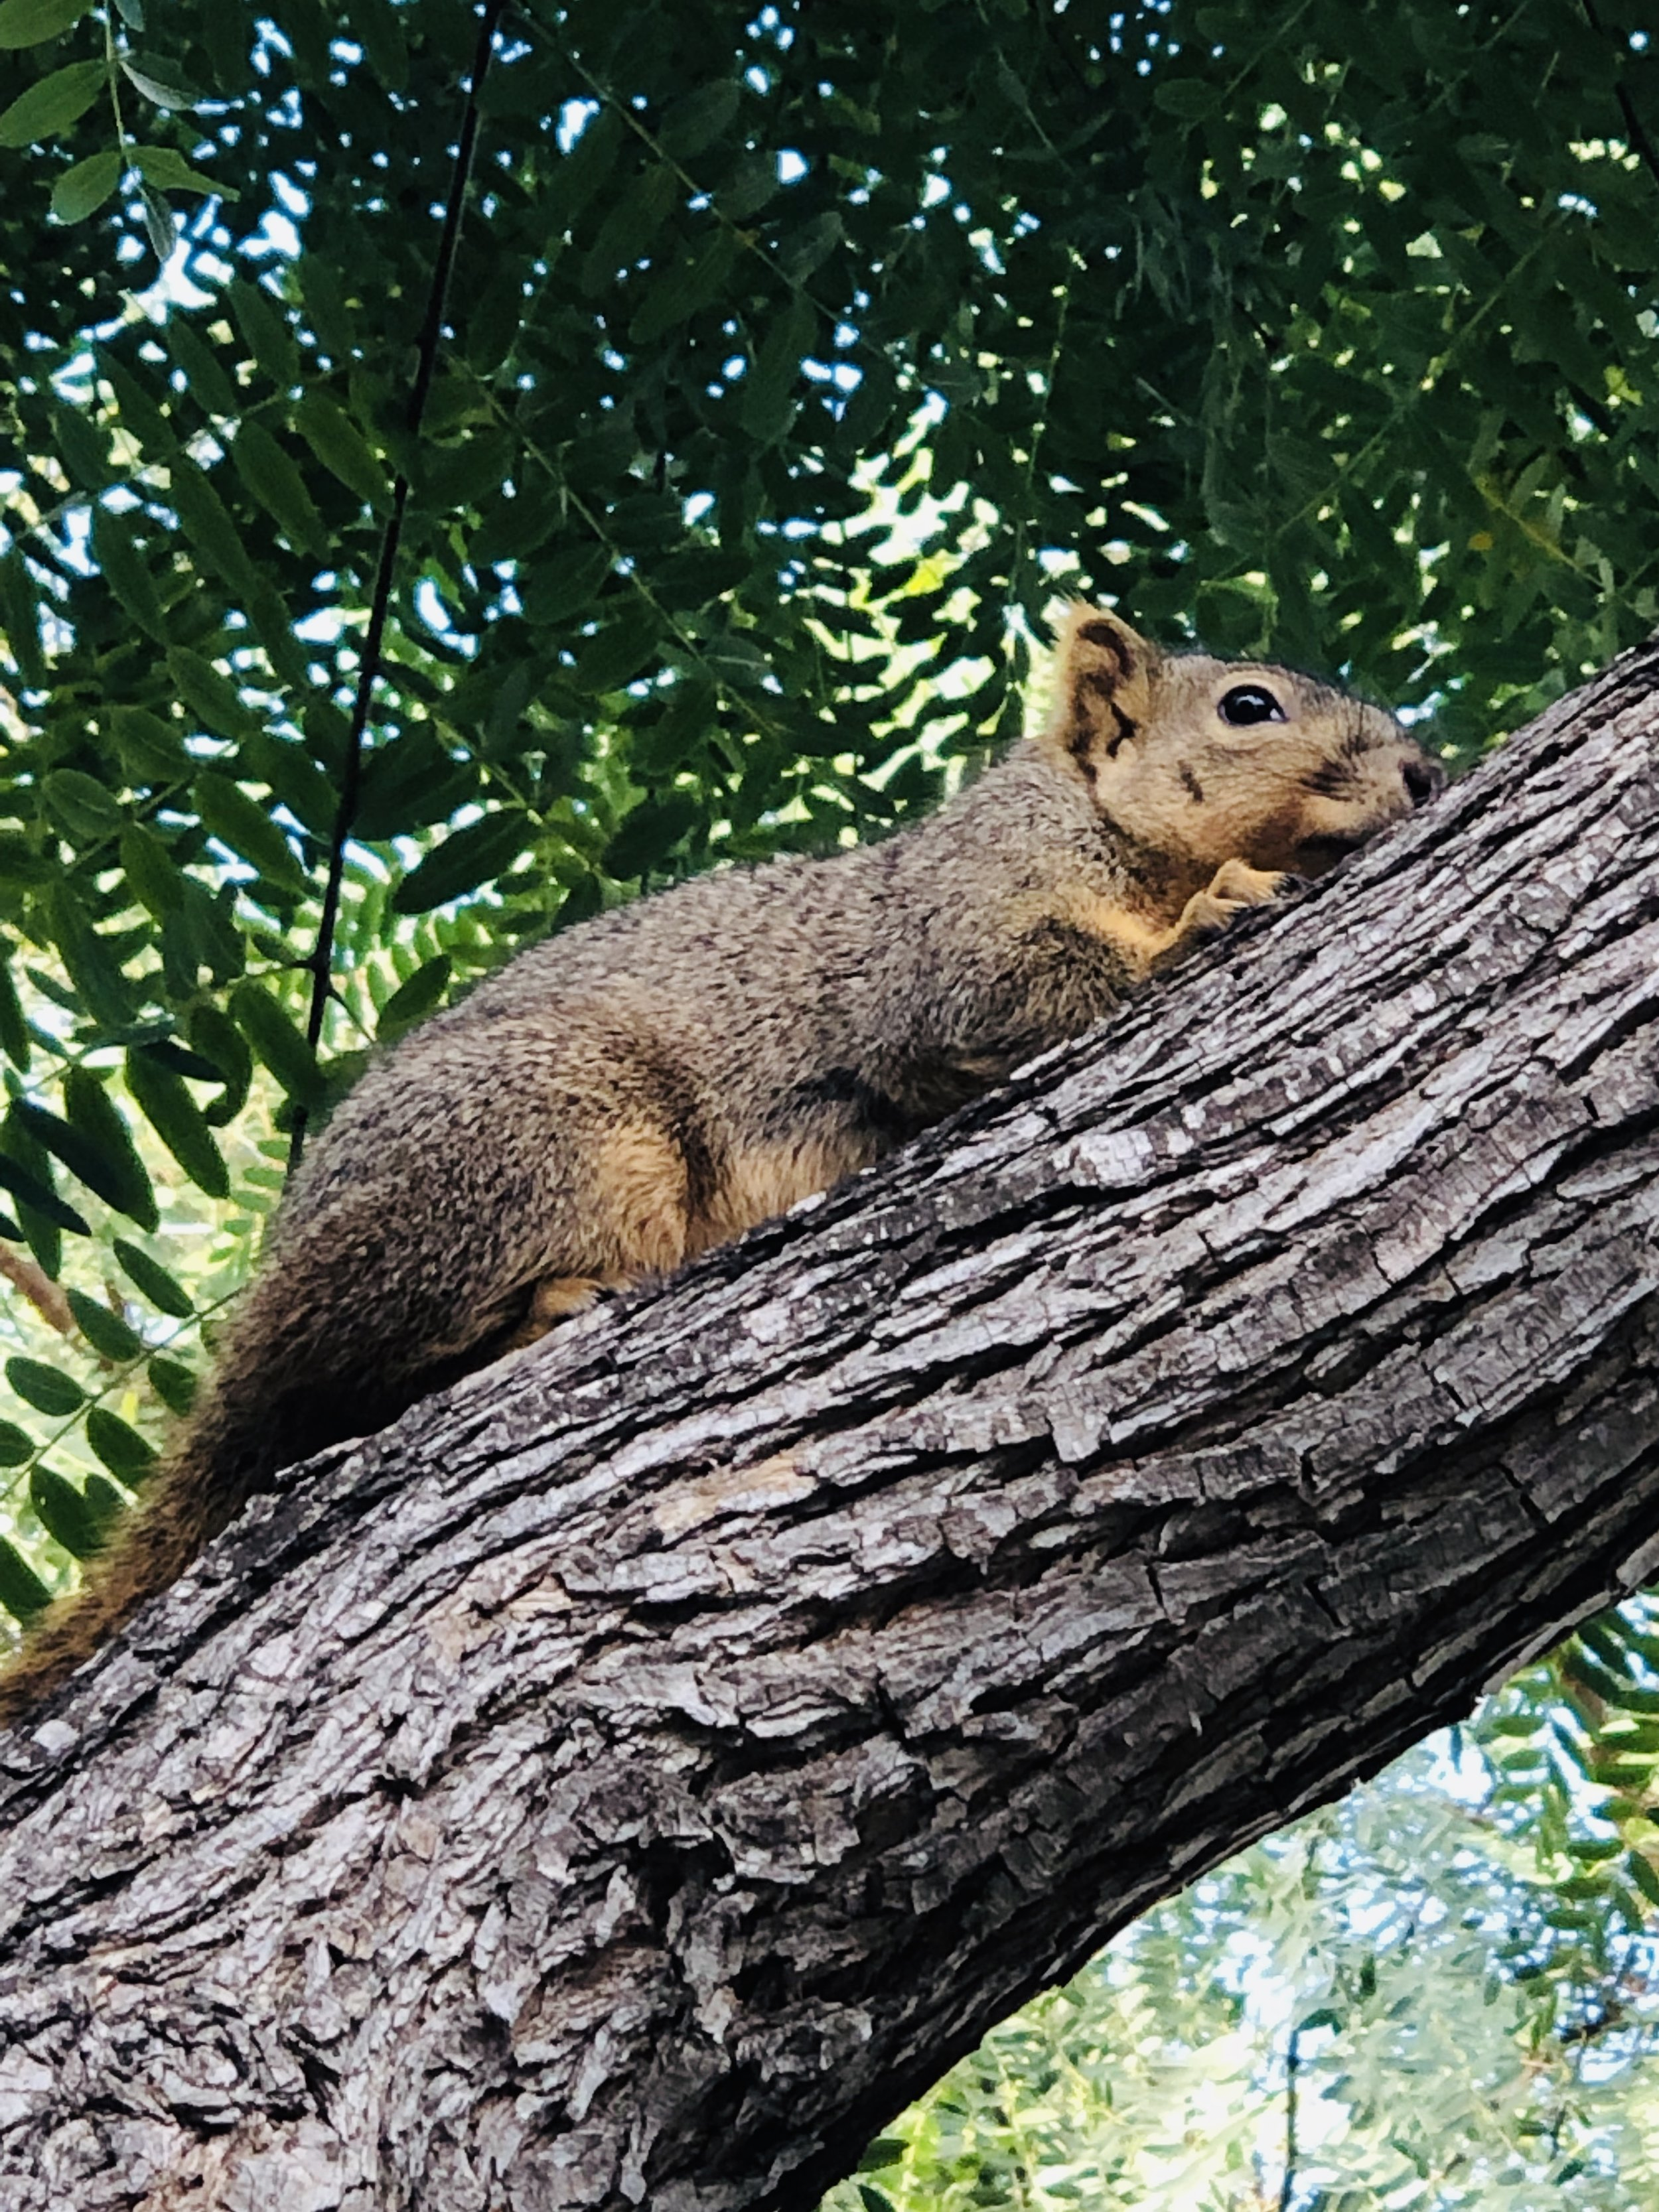 Tree Lounging - I love the casual curiosity in this adorable squirrel's eyes! He is perfectly safe, resting comfortably and peering nonchalantly at me. I so need to remember that this is how I too was created to live - perfectly safe in the Lord, resting in the shelter of His wings and unintimidated by anyone or anything around me, knowing full well that the Lord is my Protector, Provider, Comforter and so much more.